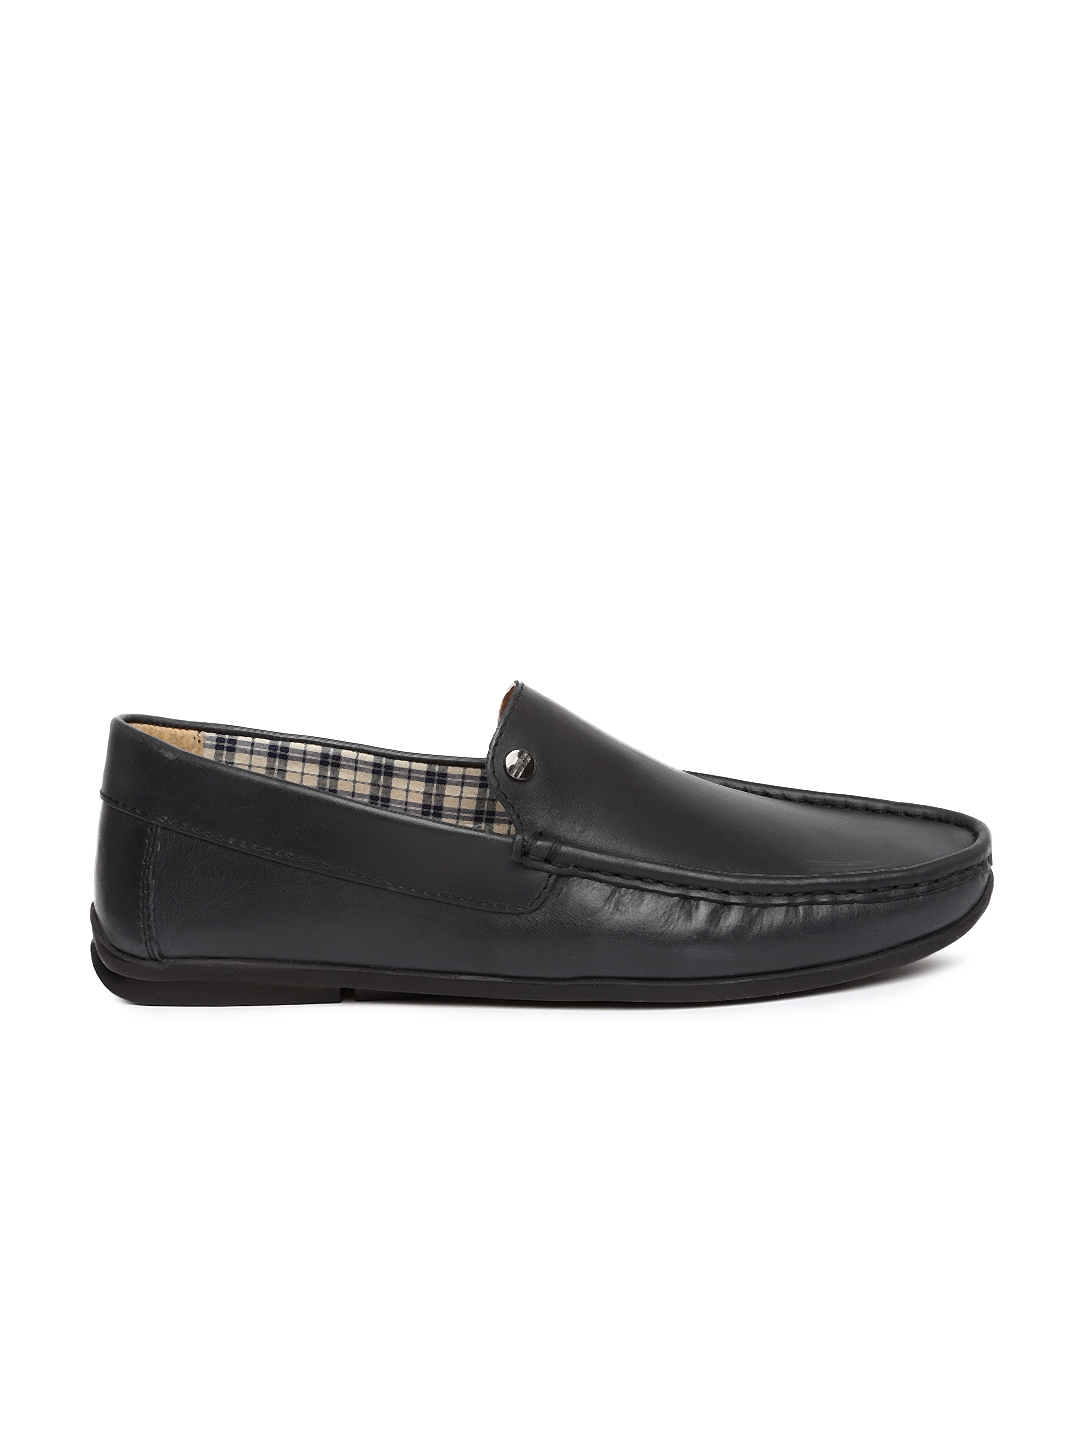 efbdb7dc959 Buy Carlton London Men Black Loafers - Casual Shoes for Men 1764534 ...